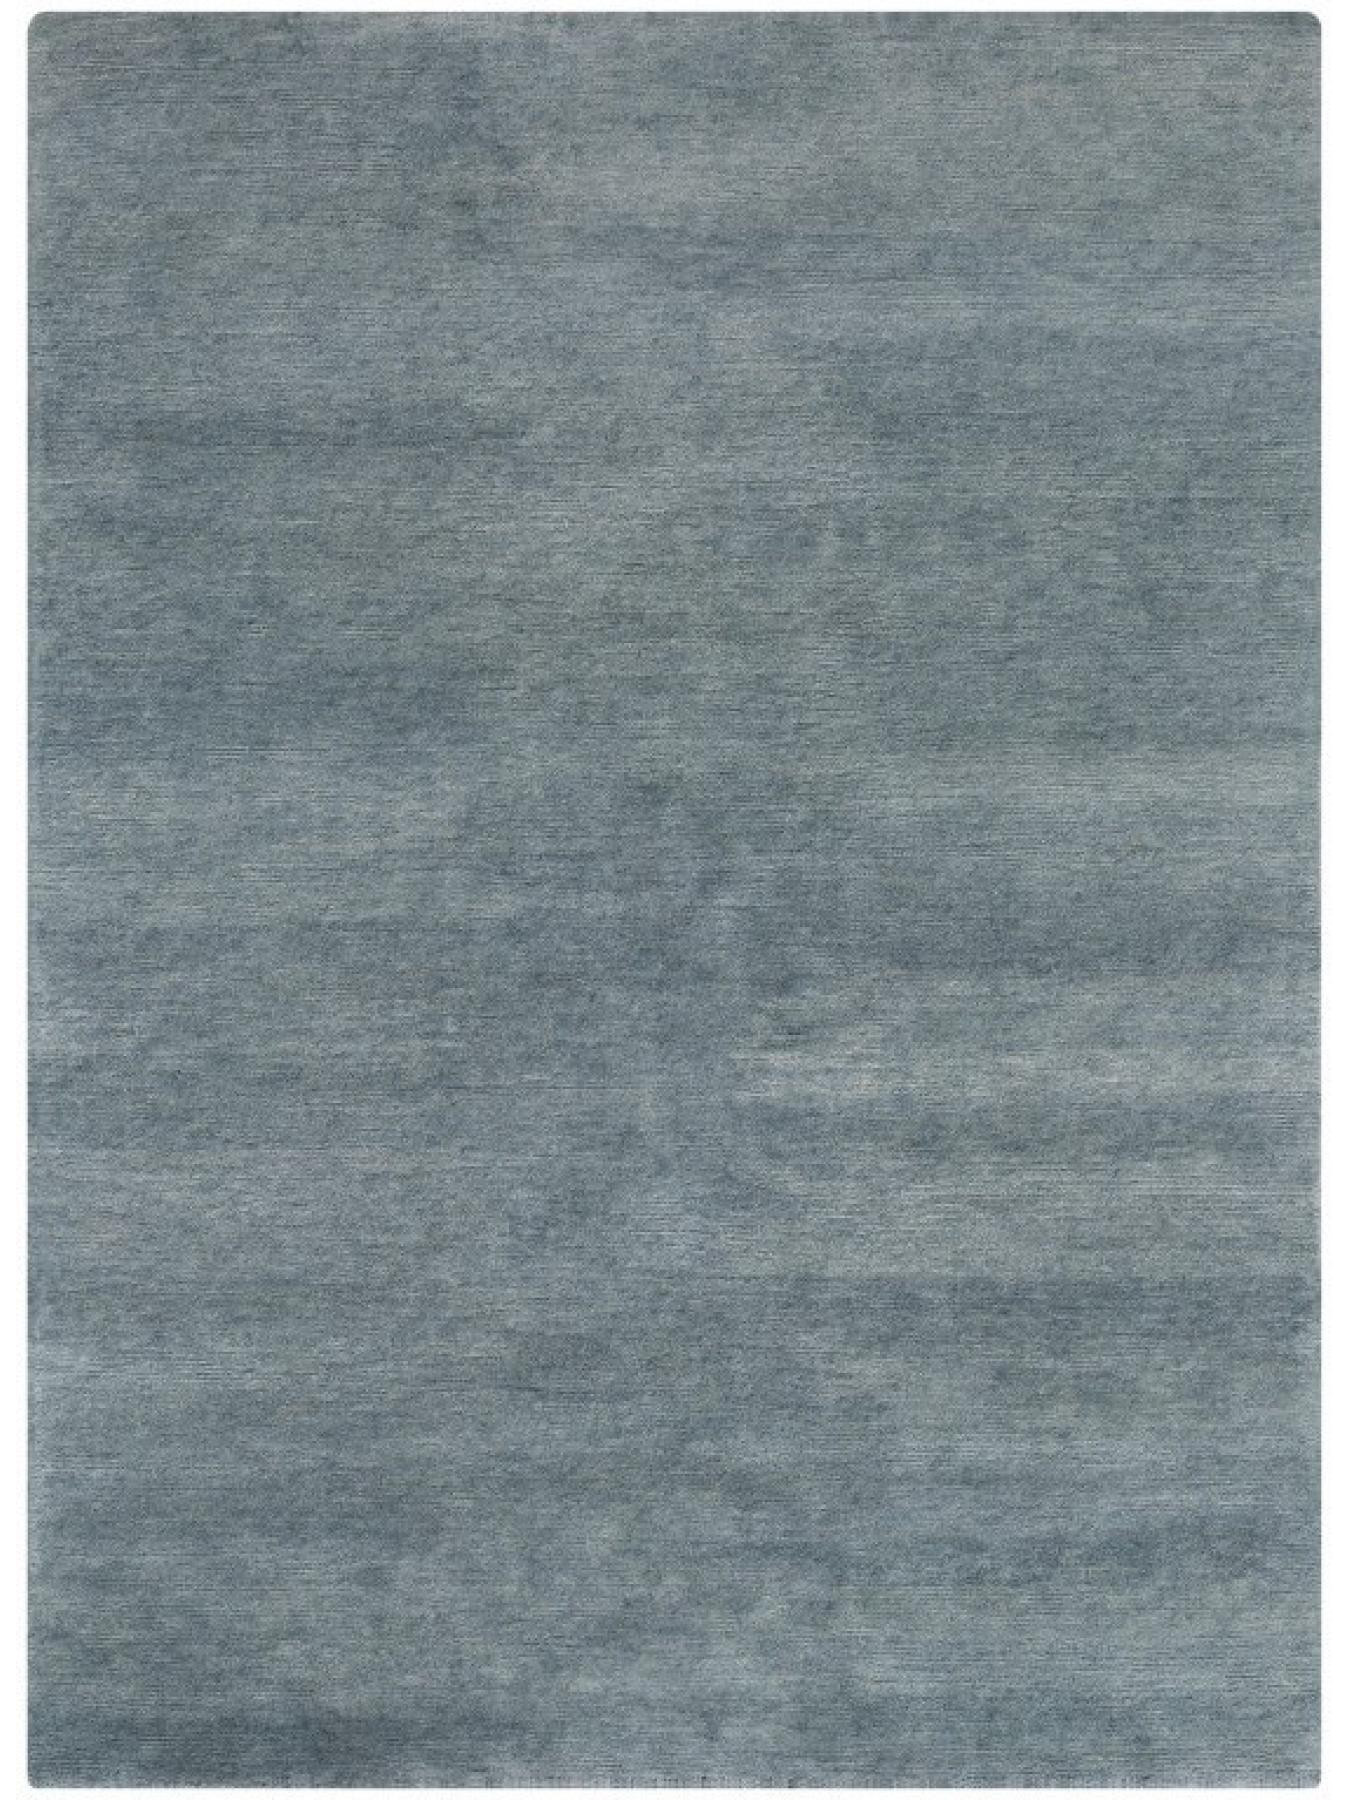 Tapis unis - Look.418-001 bleu denim